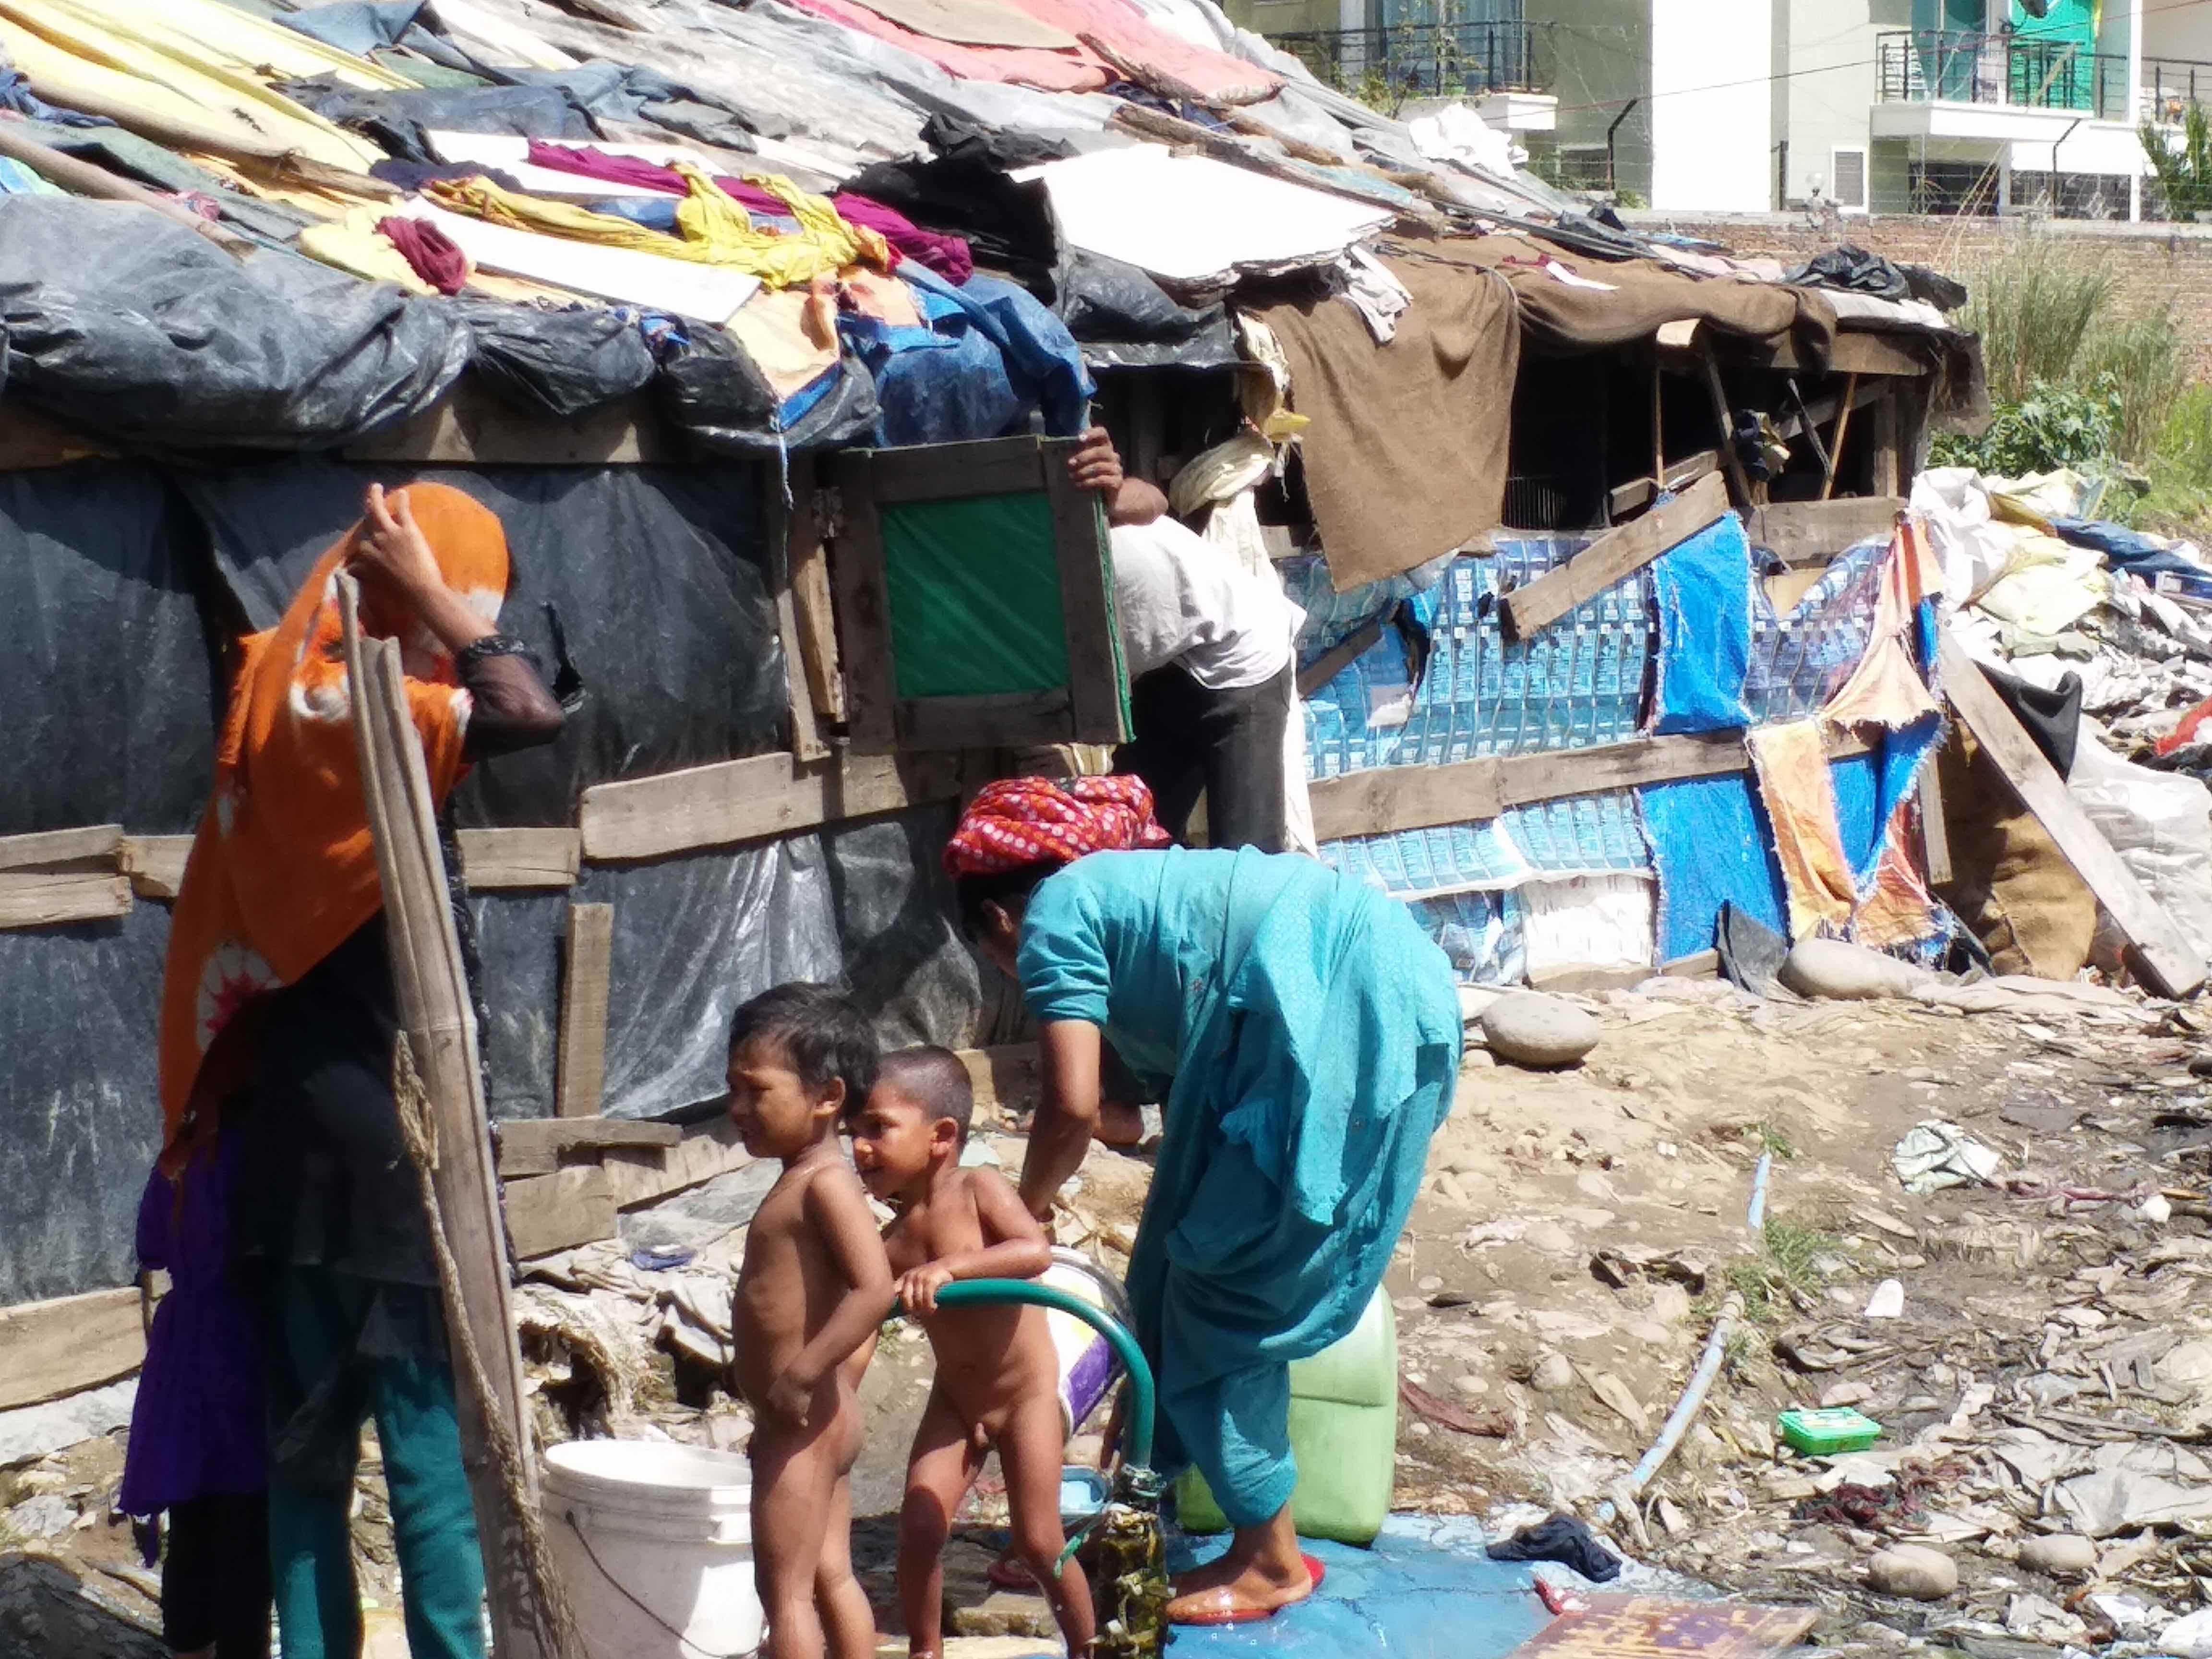 With Death Threats and Arson, Life is Precarious for Jammu's Rohingya Refugees